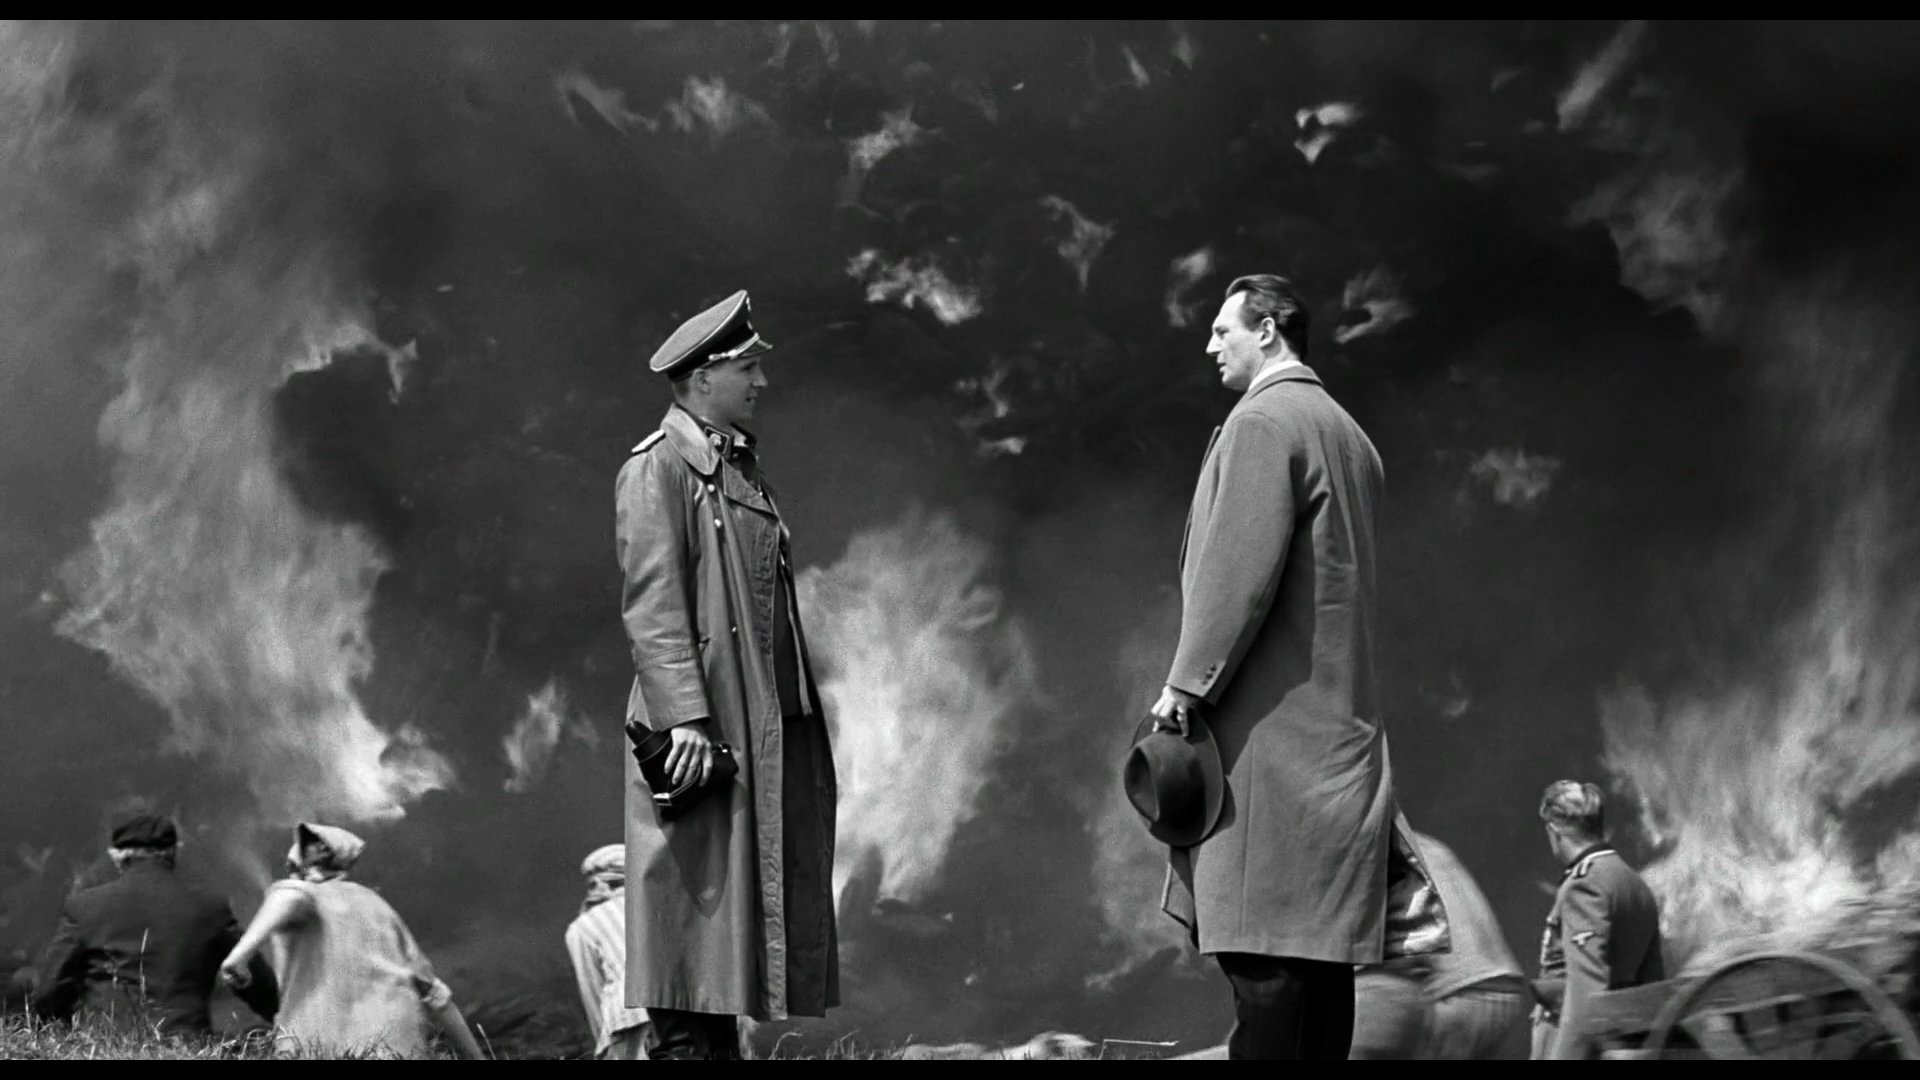 SCHINDLERS LIST Drama War Military History Wallpaper  1920x1080 539030 WallpaperUP